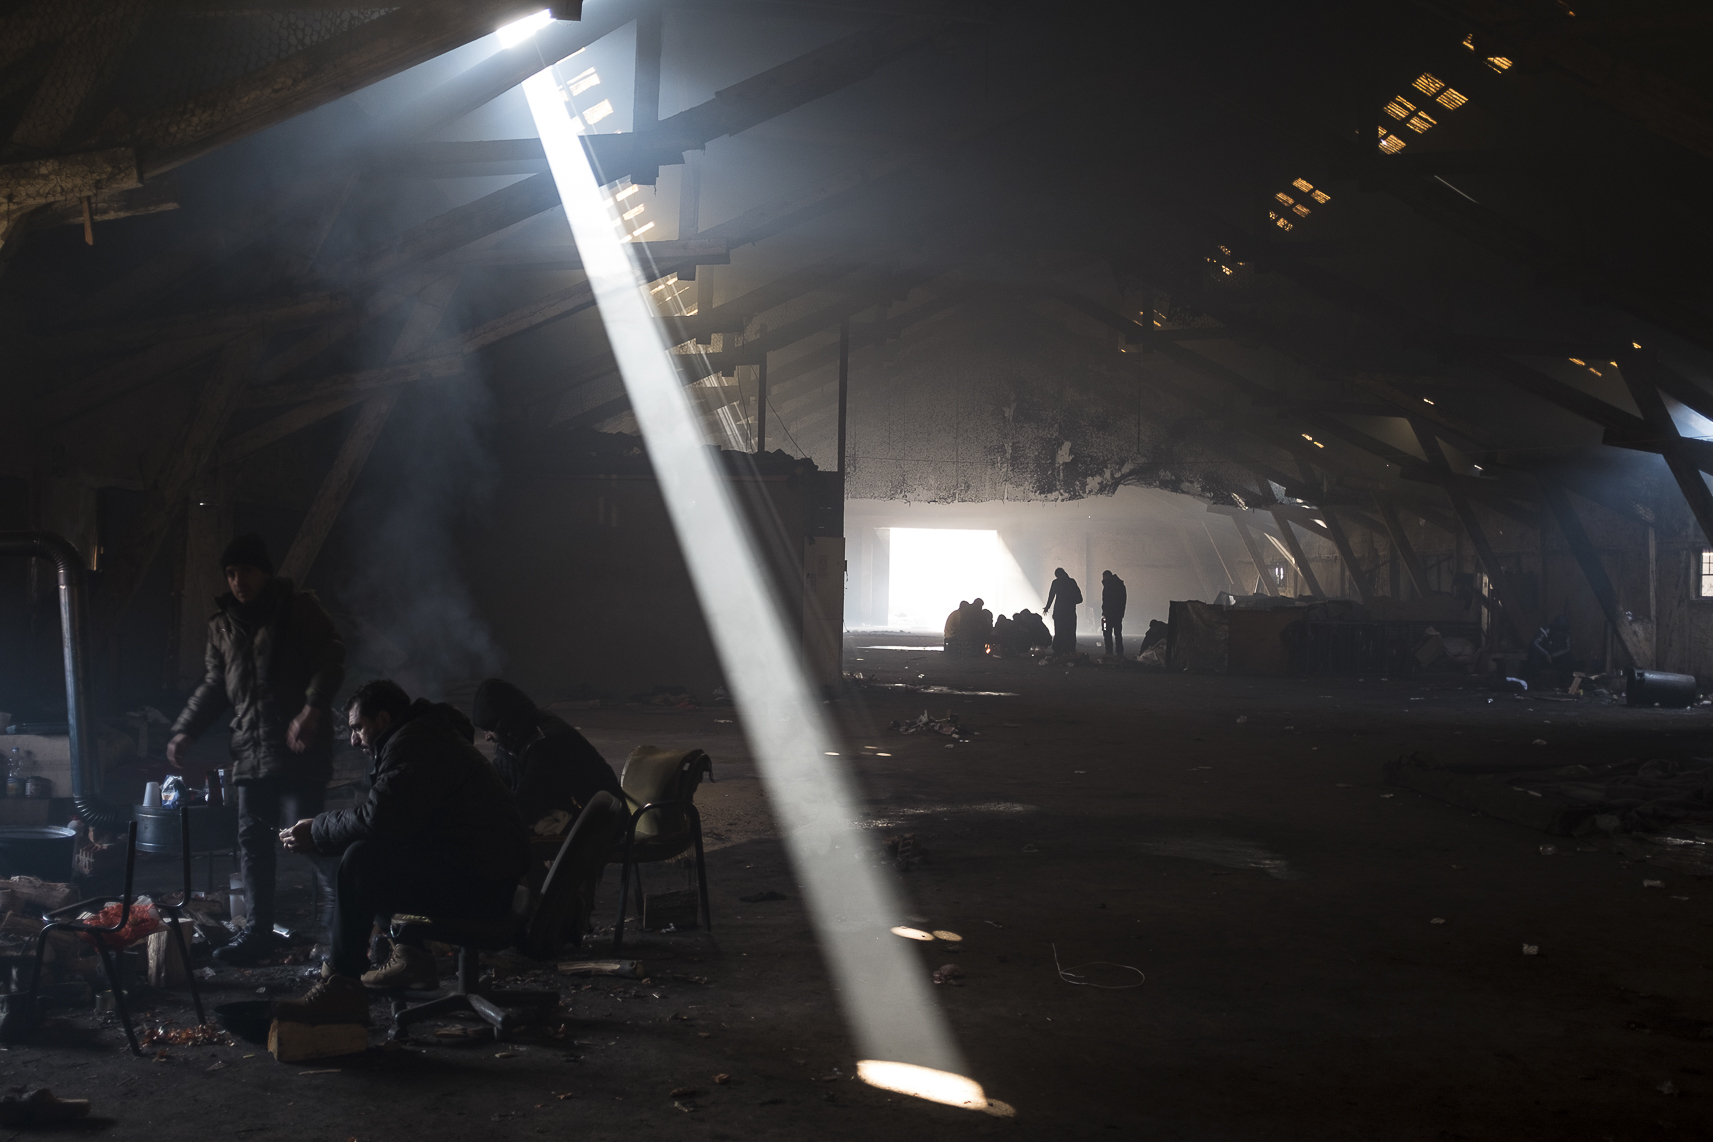 Migrants shield themselves from the cold around a fire inside an abandoned warehouse where they took shelter in Belgrade, Serbia. February 15, 2107.